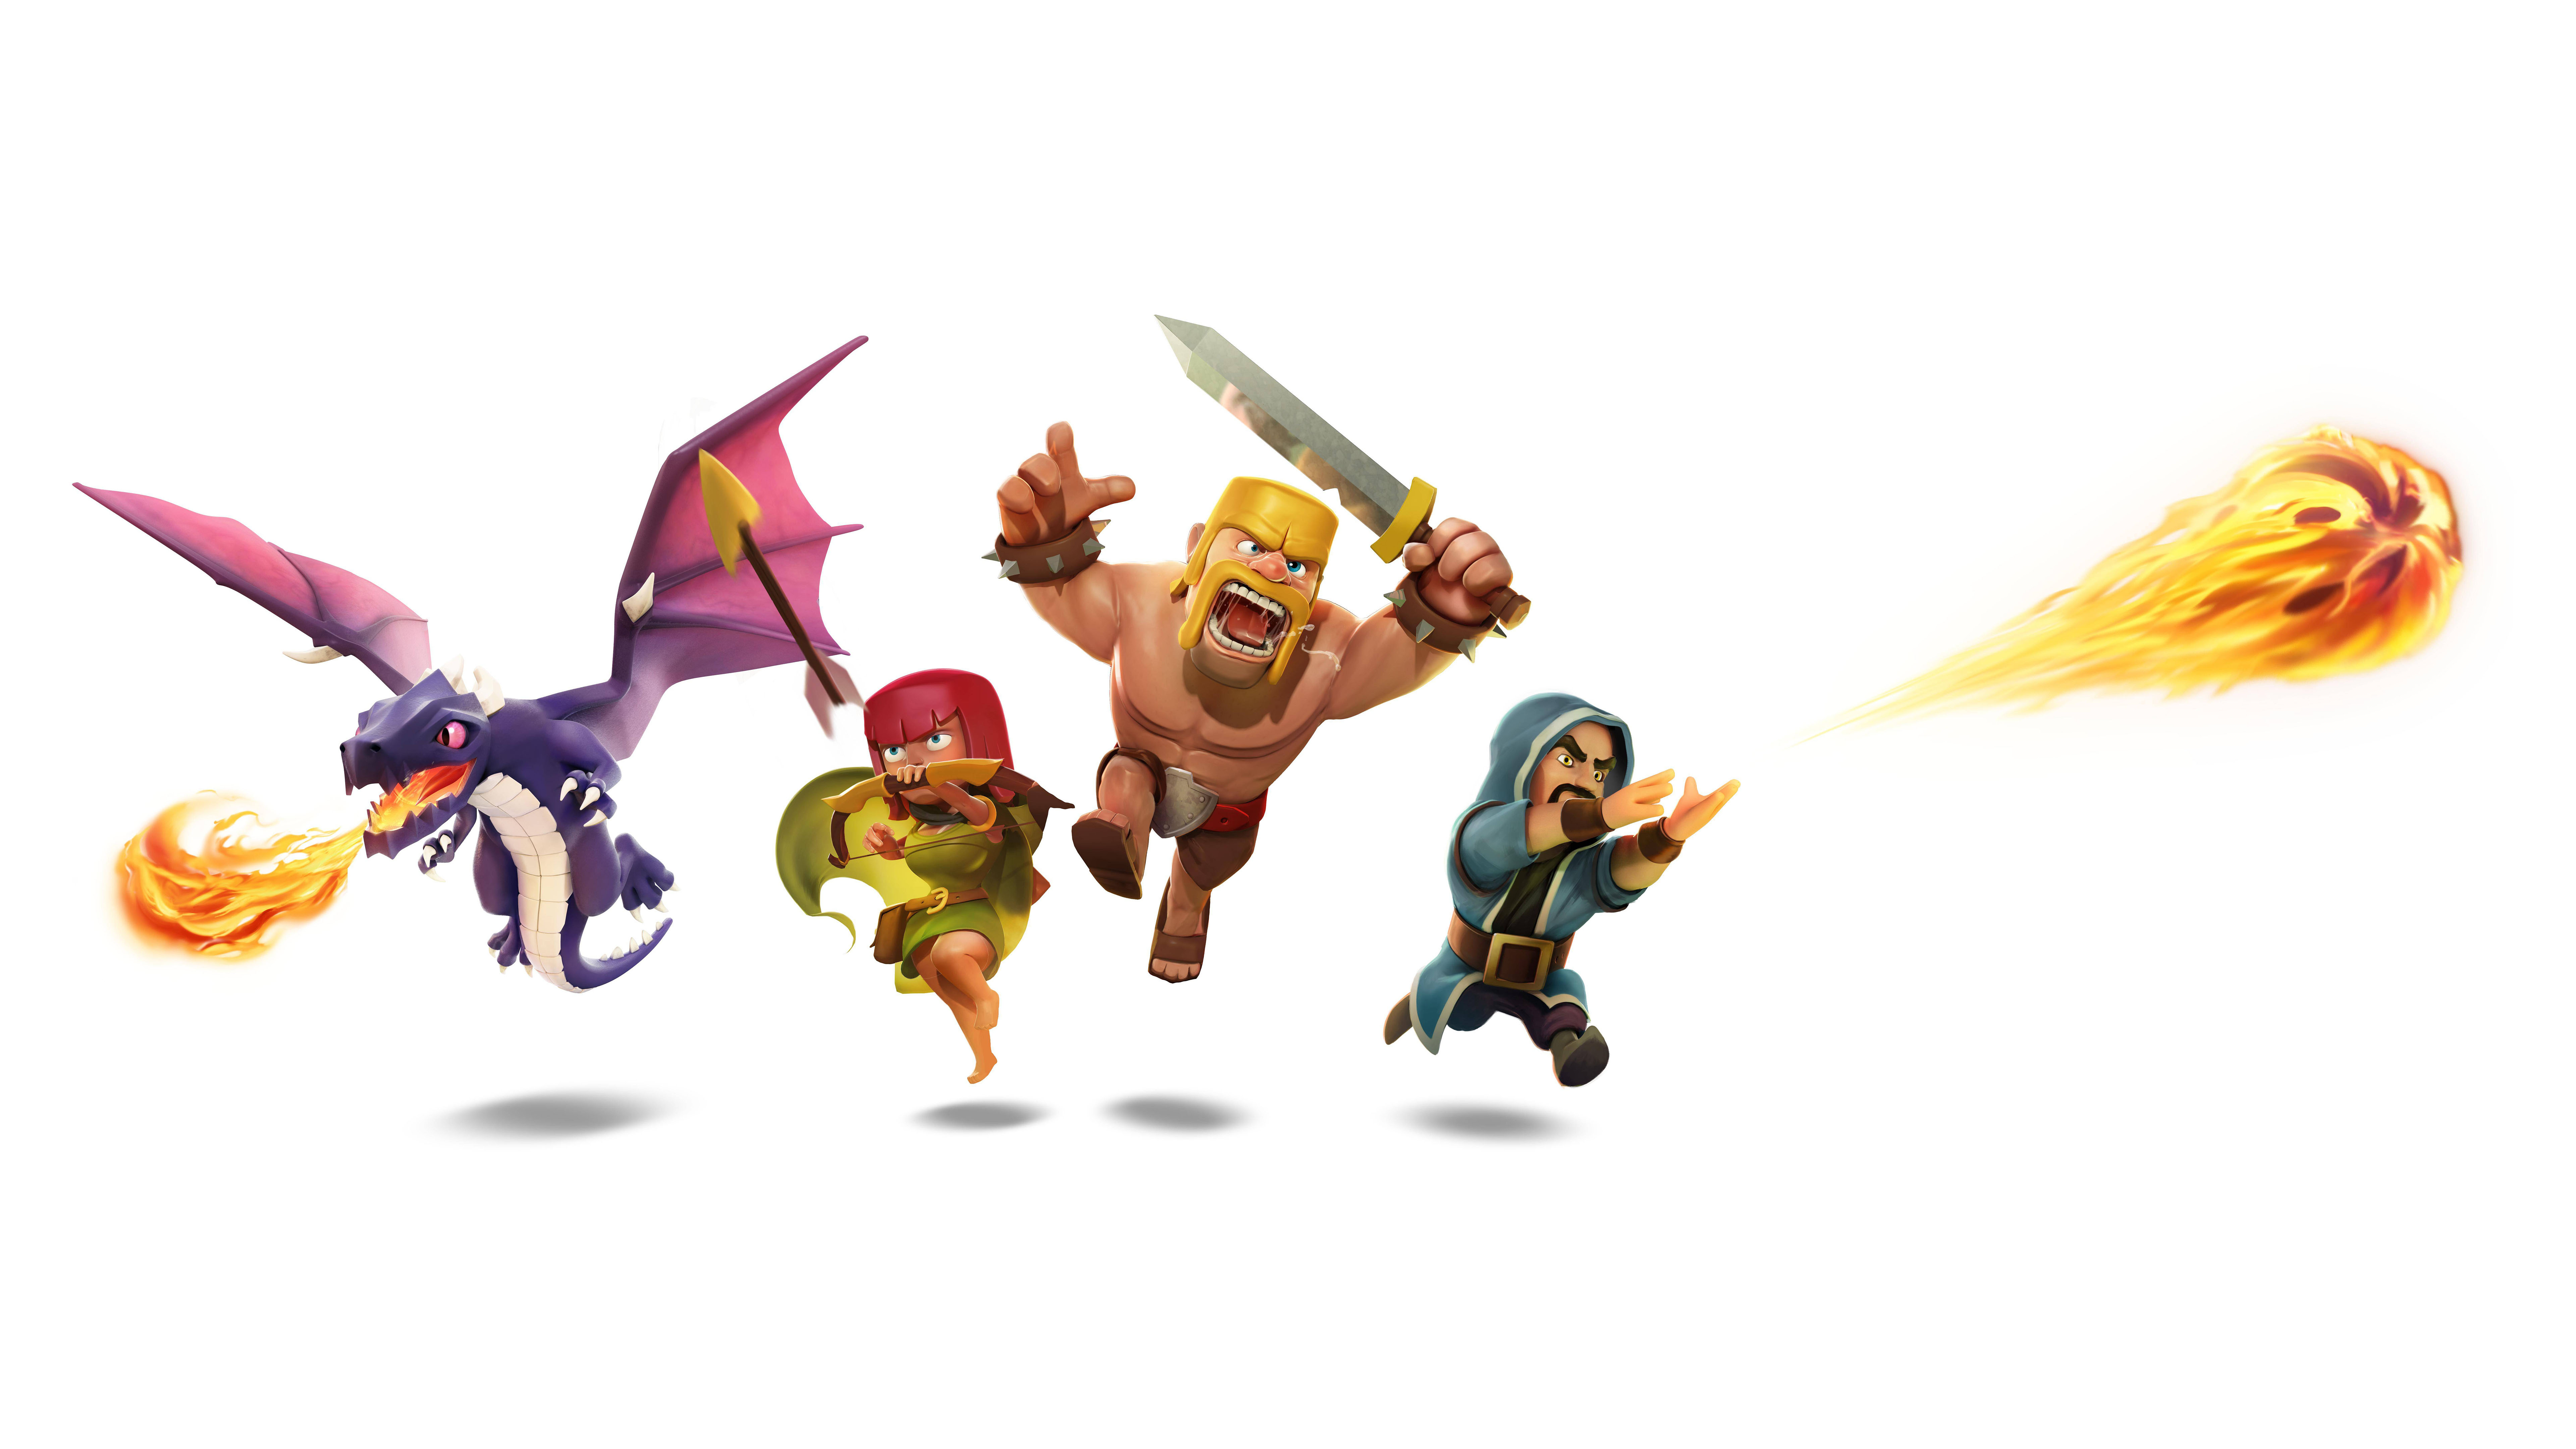 Barbarian Clash Of Clans Hd Hd Games 4k Wallpapers: Clash Of Clans 8k, HD Games, 4k Wallpapers, Images